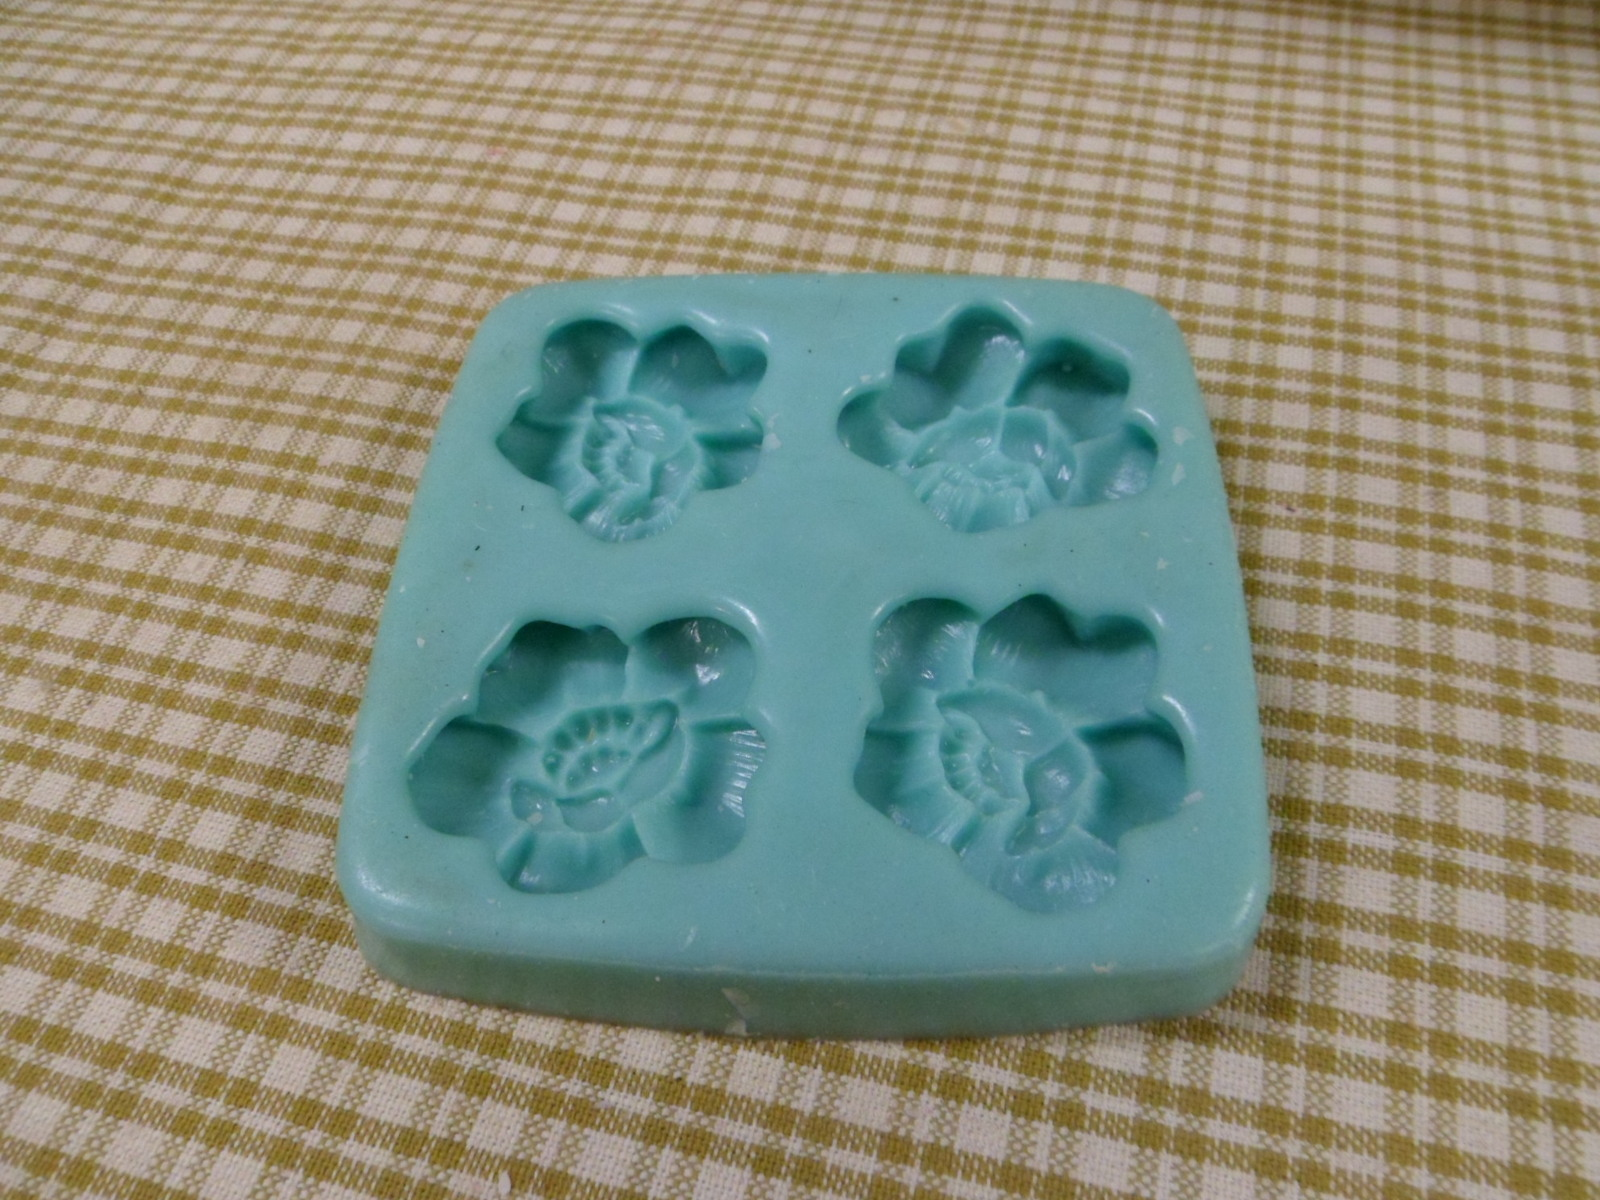 Silicone soap molds moulds - your choice